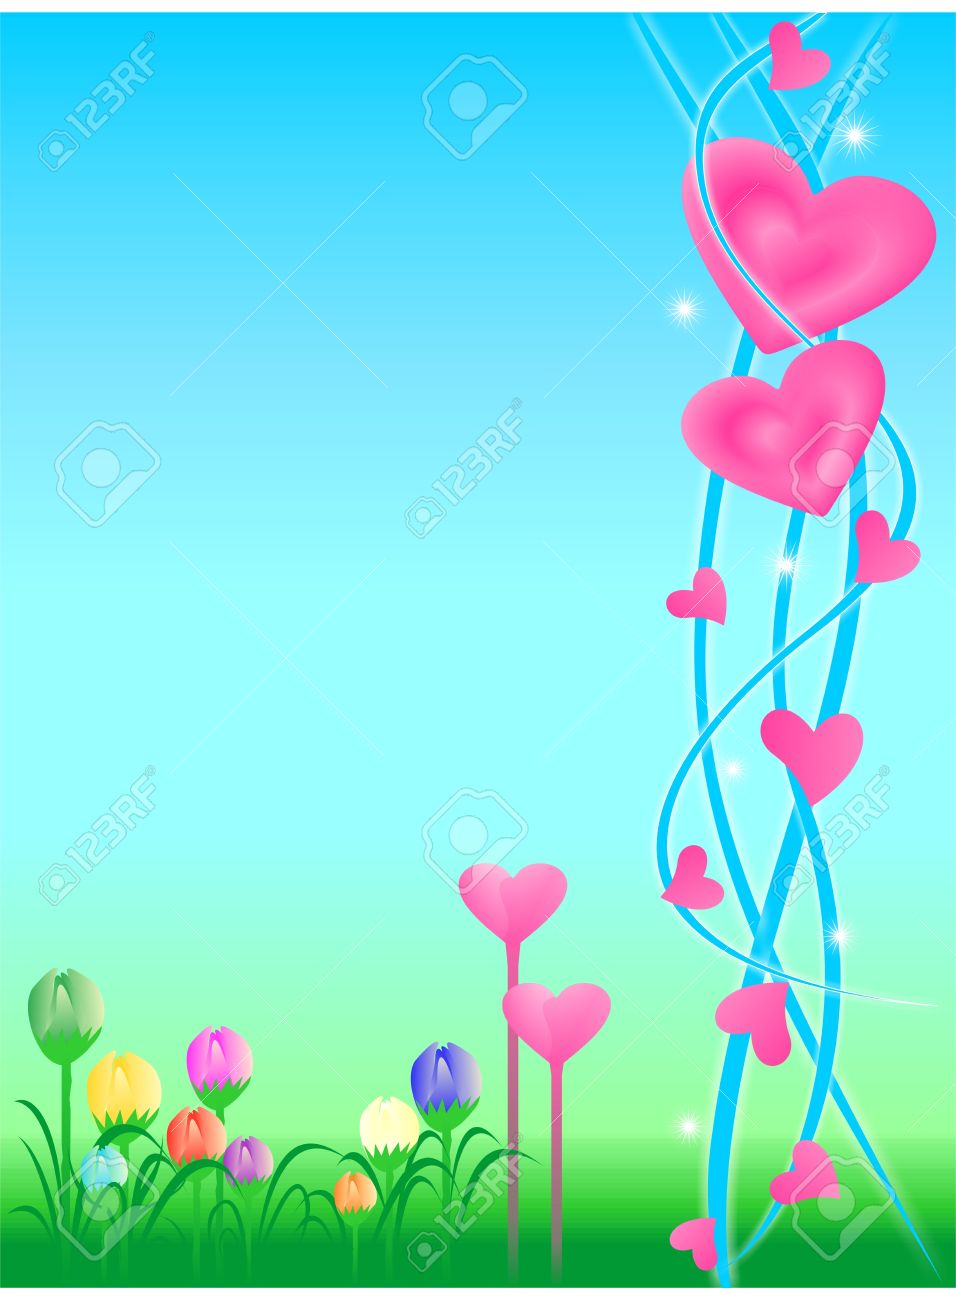 Background with floral motif and cute love - 10748469